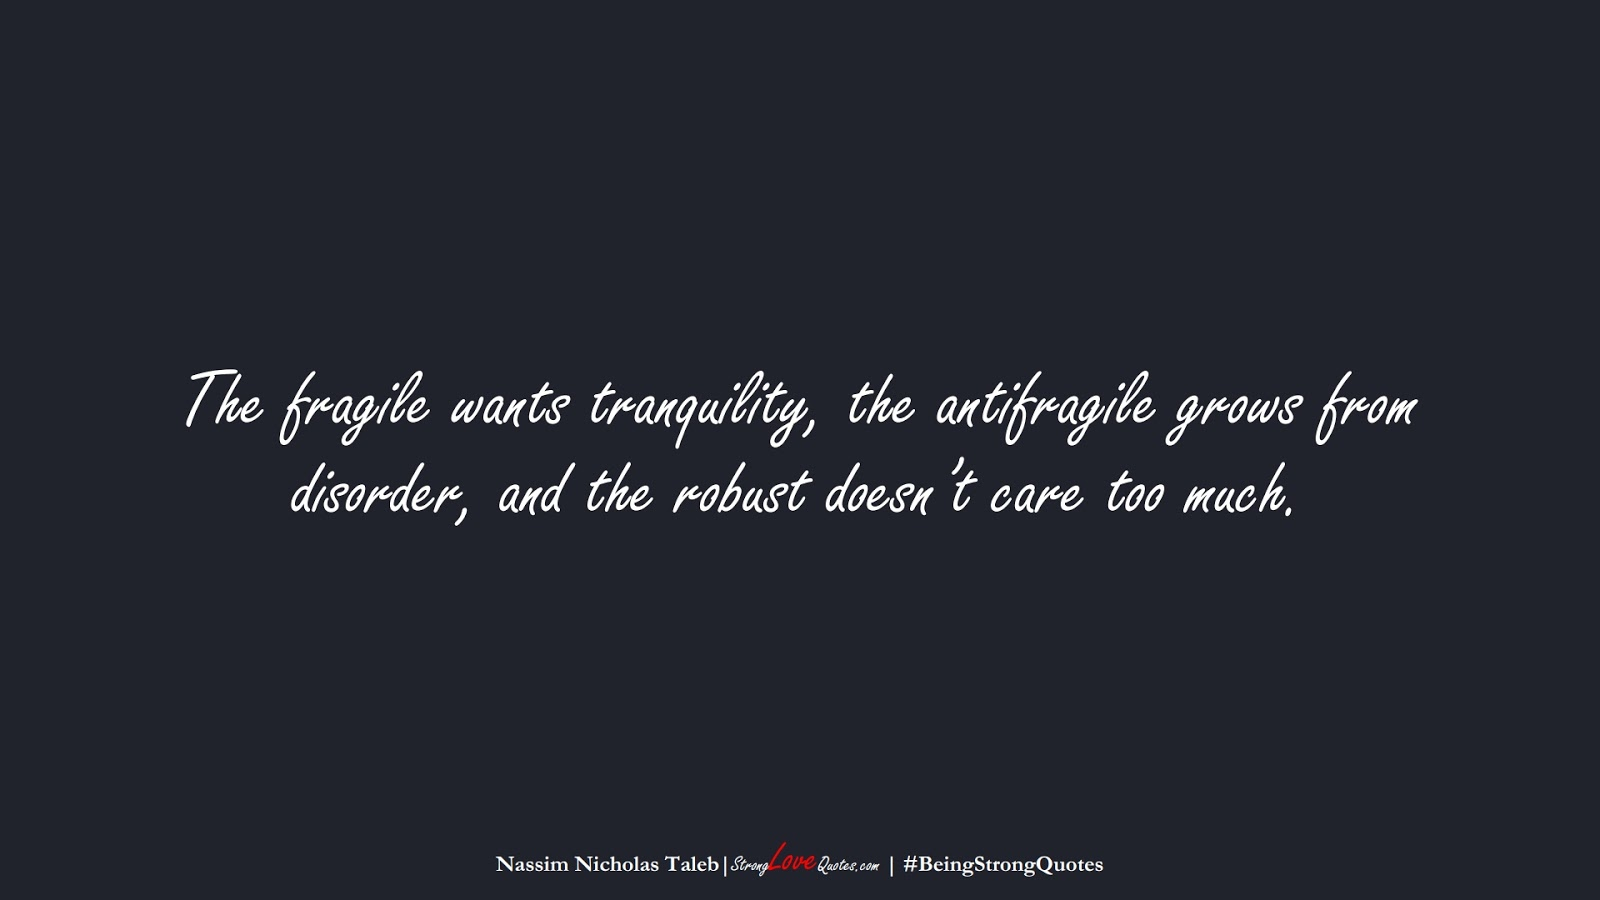 The fragile wants tranquility, the antifragile grows from disorder, and the robust doesn't care too much. (Nassim Nicholas Taleb);  #BeingStrongQuotes